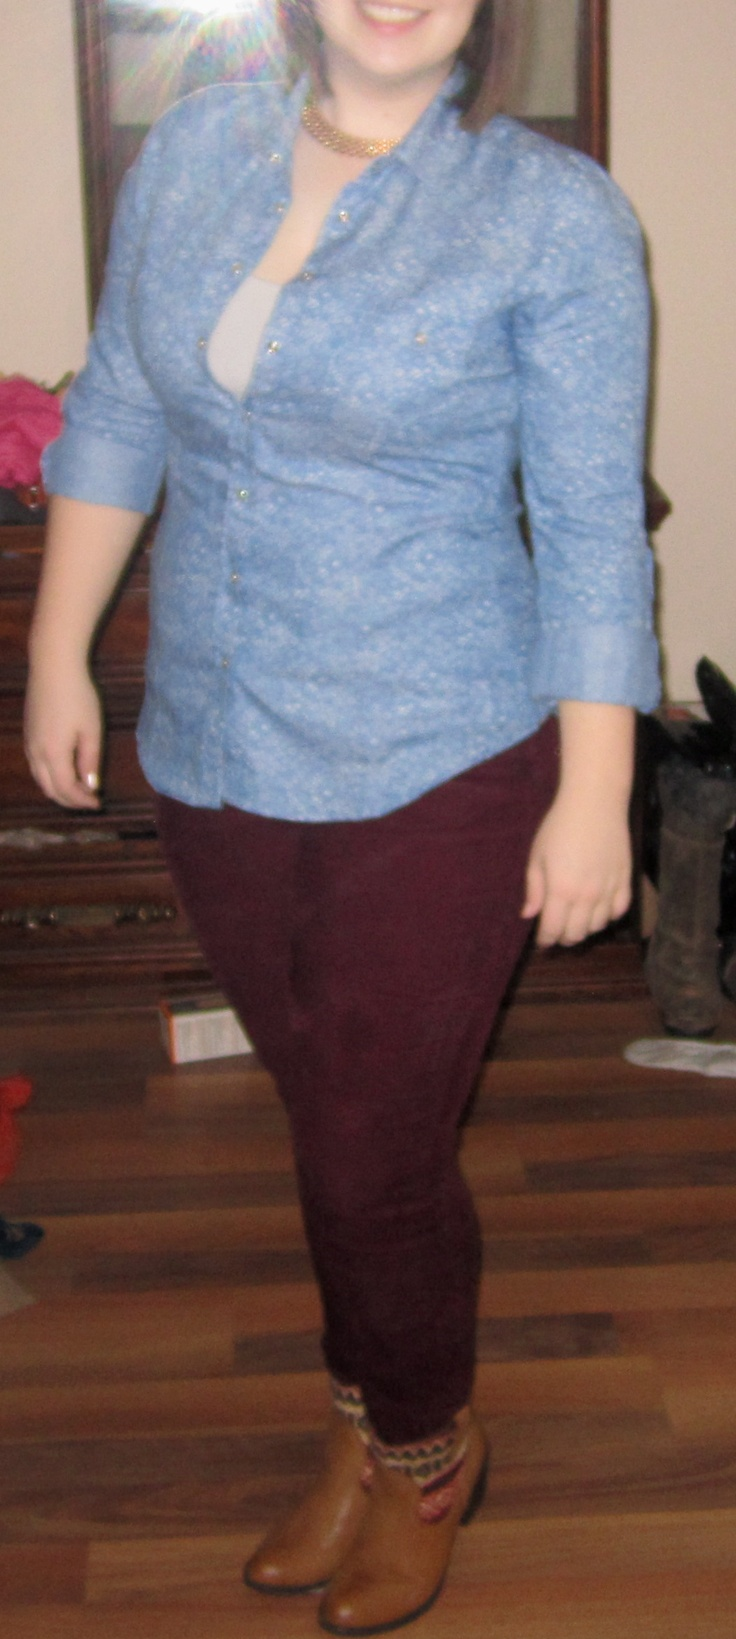 This particular outfit show how great thrift stores can be! Ankle boots - $ 16.00 (Maurices), Red Cords - $ 15.00 (Suzy Shier), White Camisole - $ 5.00 (Reitmans), Denim button up - $ 5.00 (Value Village), Gold Necklace - Grandma's. Total look: $41.00